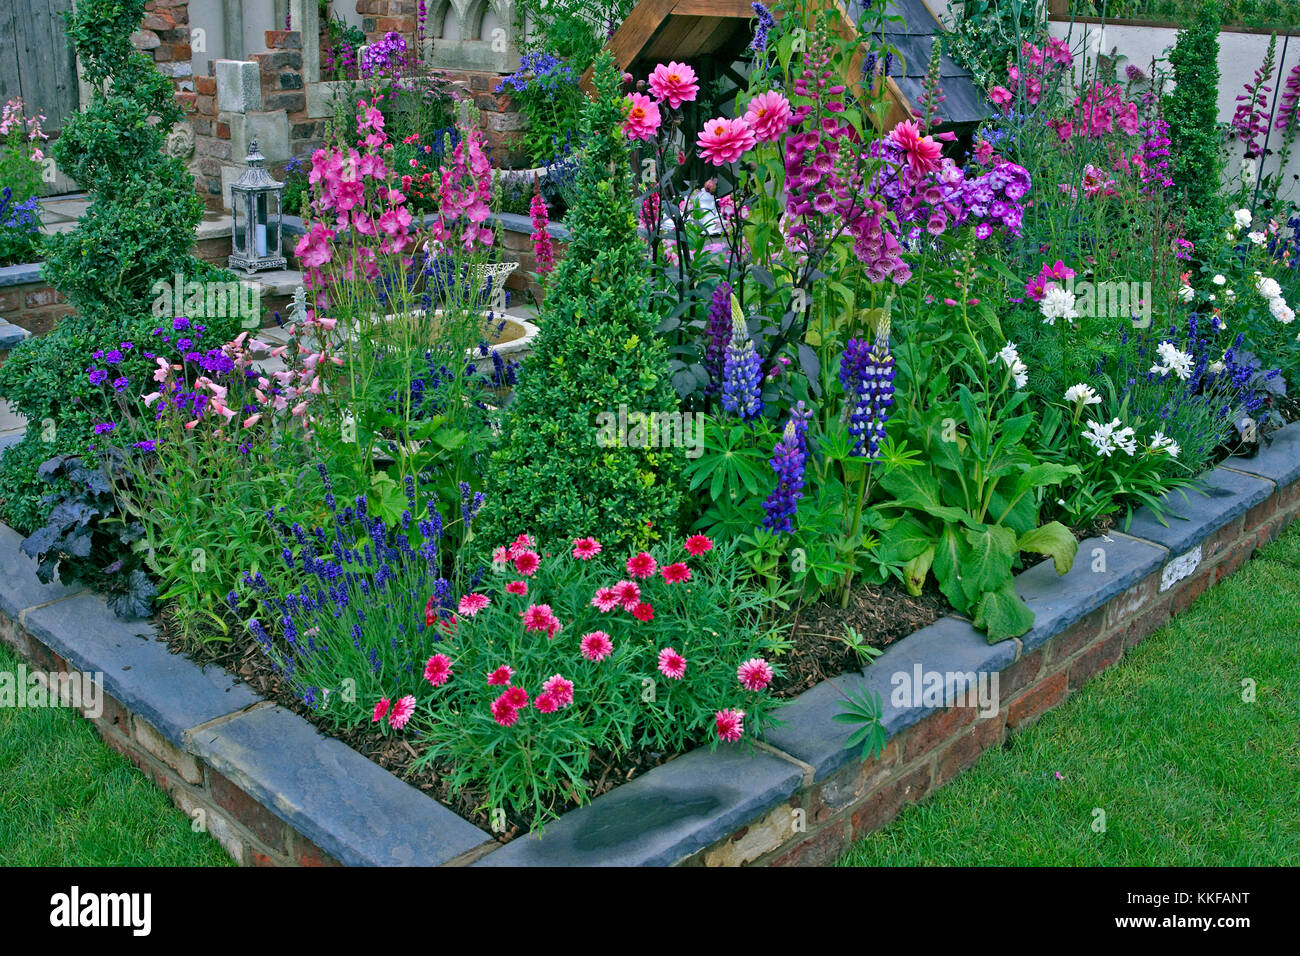 Colourful Planting In A Raised Bed Of A Small Urban Garden Stock Photo Alamy